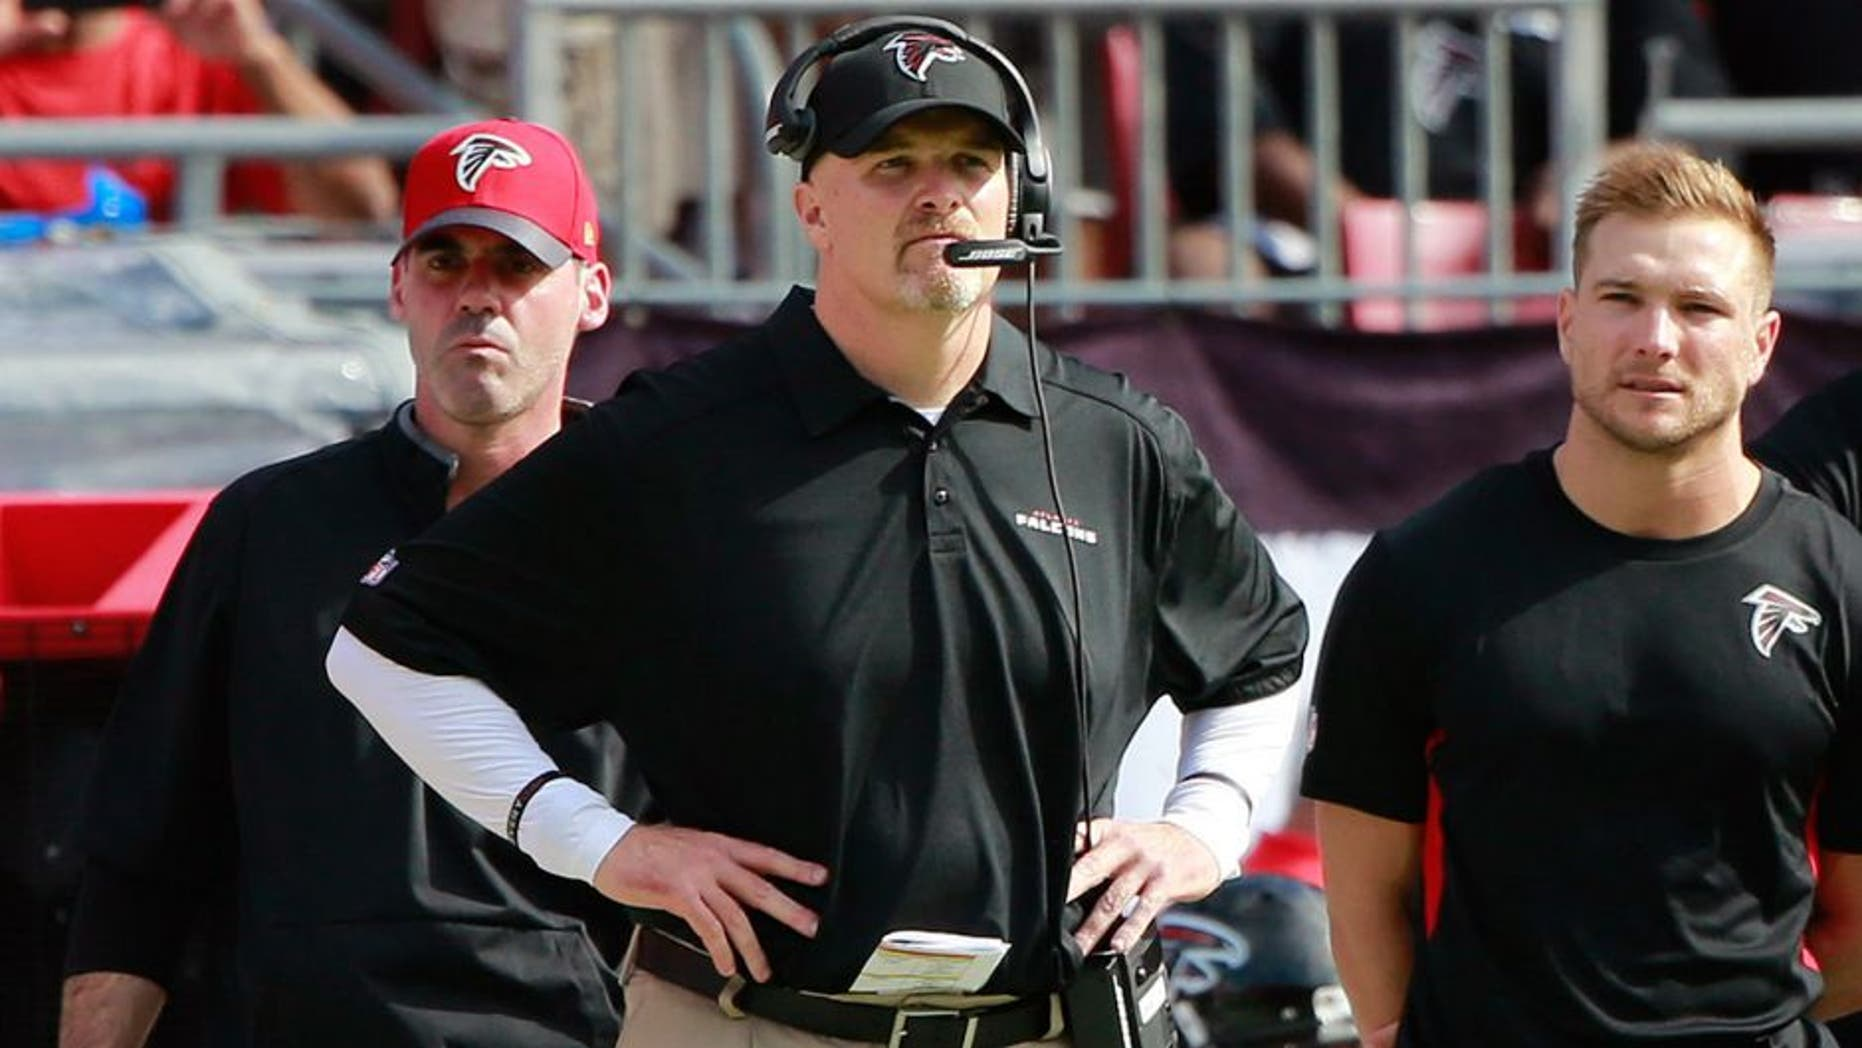 Dec 6, 2015; Tampa, FL, USA; Atlanta Falcons head coach Dan Quinn during the first quarter at Raymond James Stadium. Mandatory Credit: Kim Klement-USA TODAY Sports